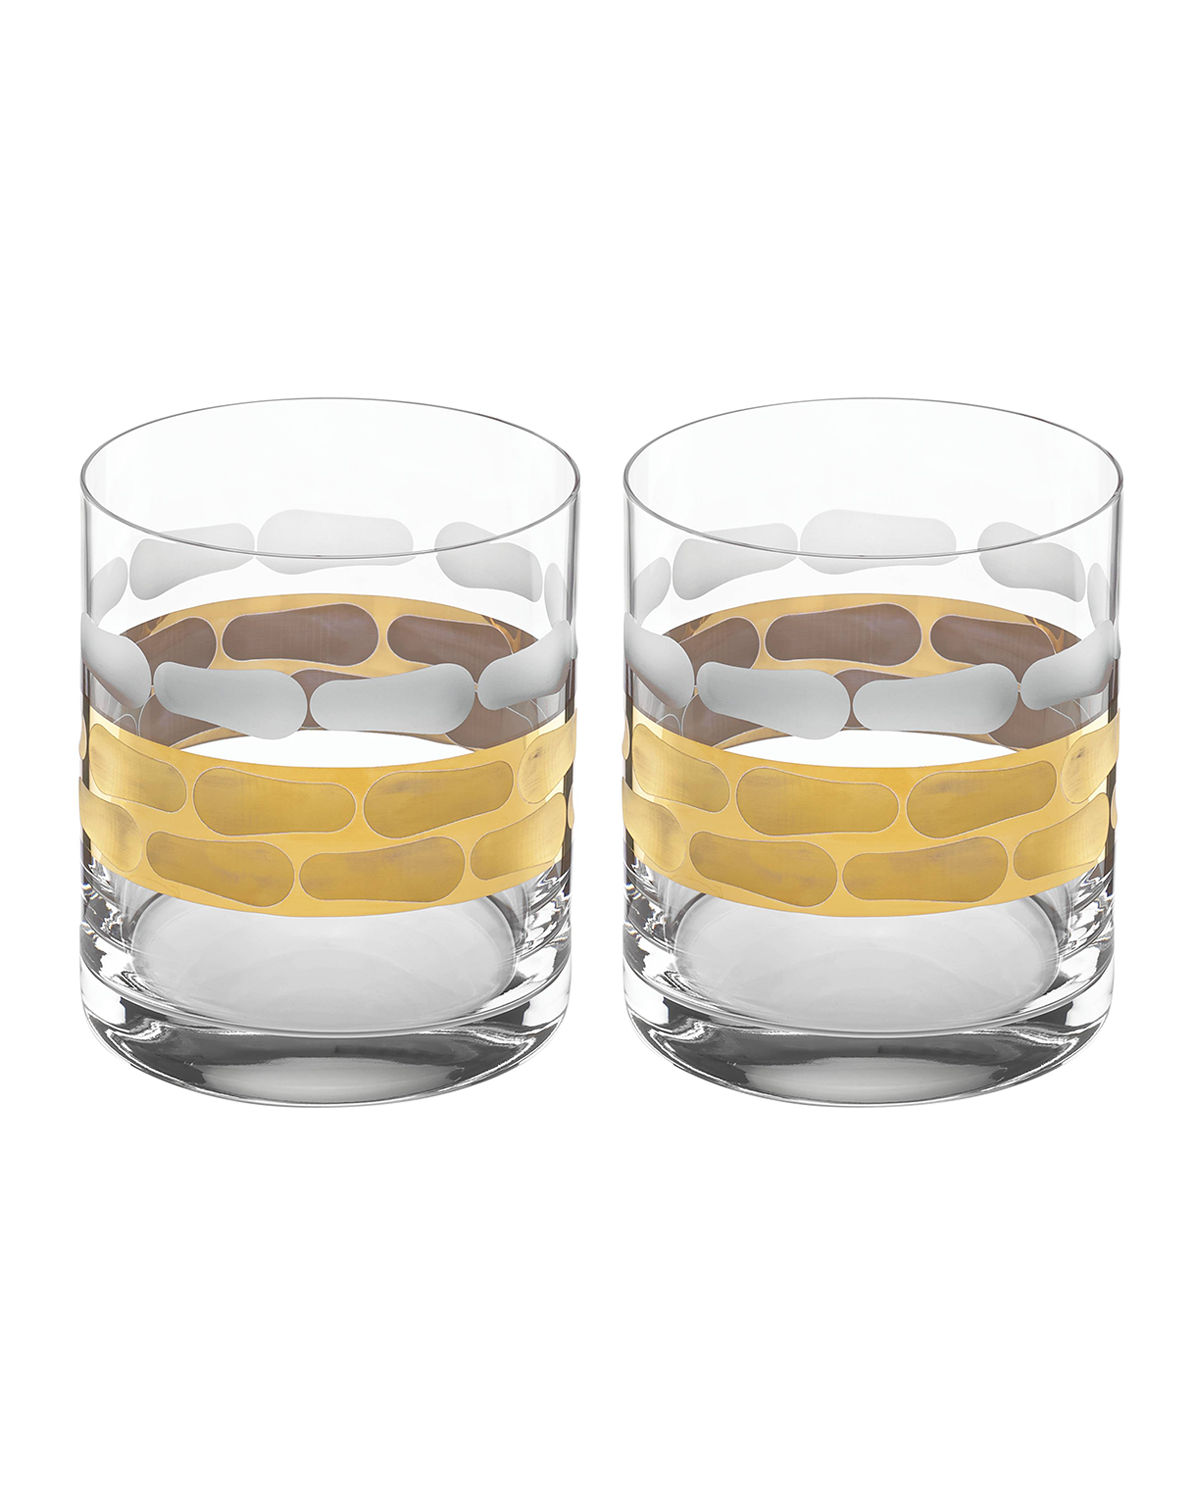 Truro Double Old Fashioned Glasses, Set of 2